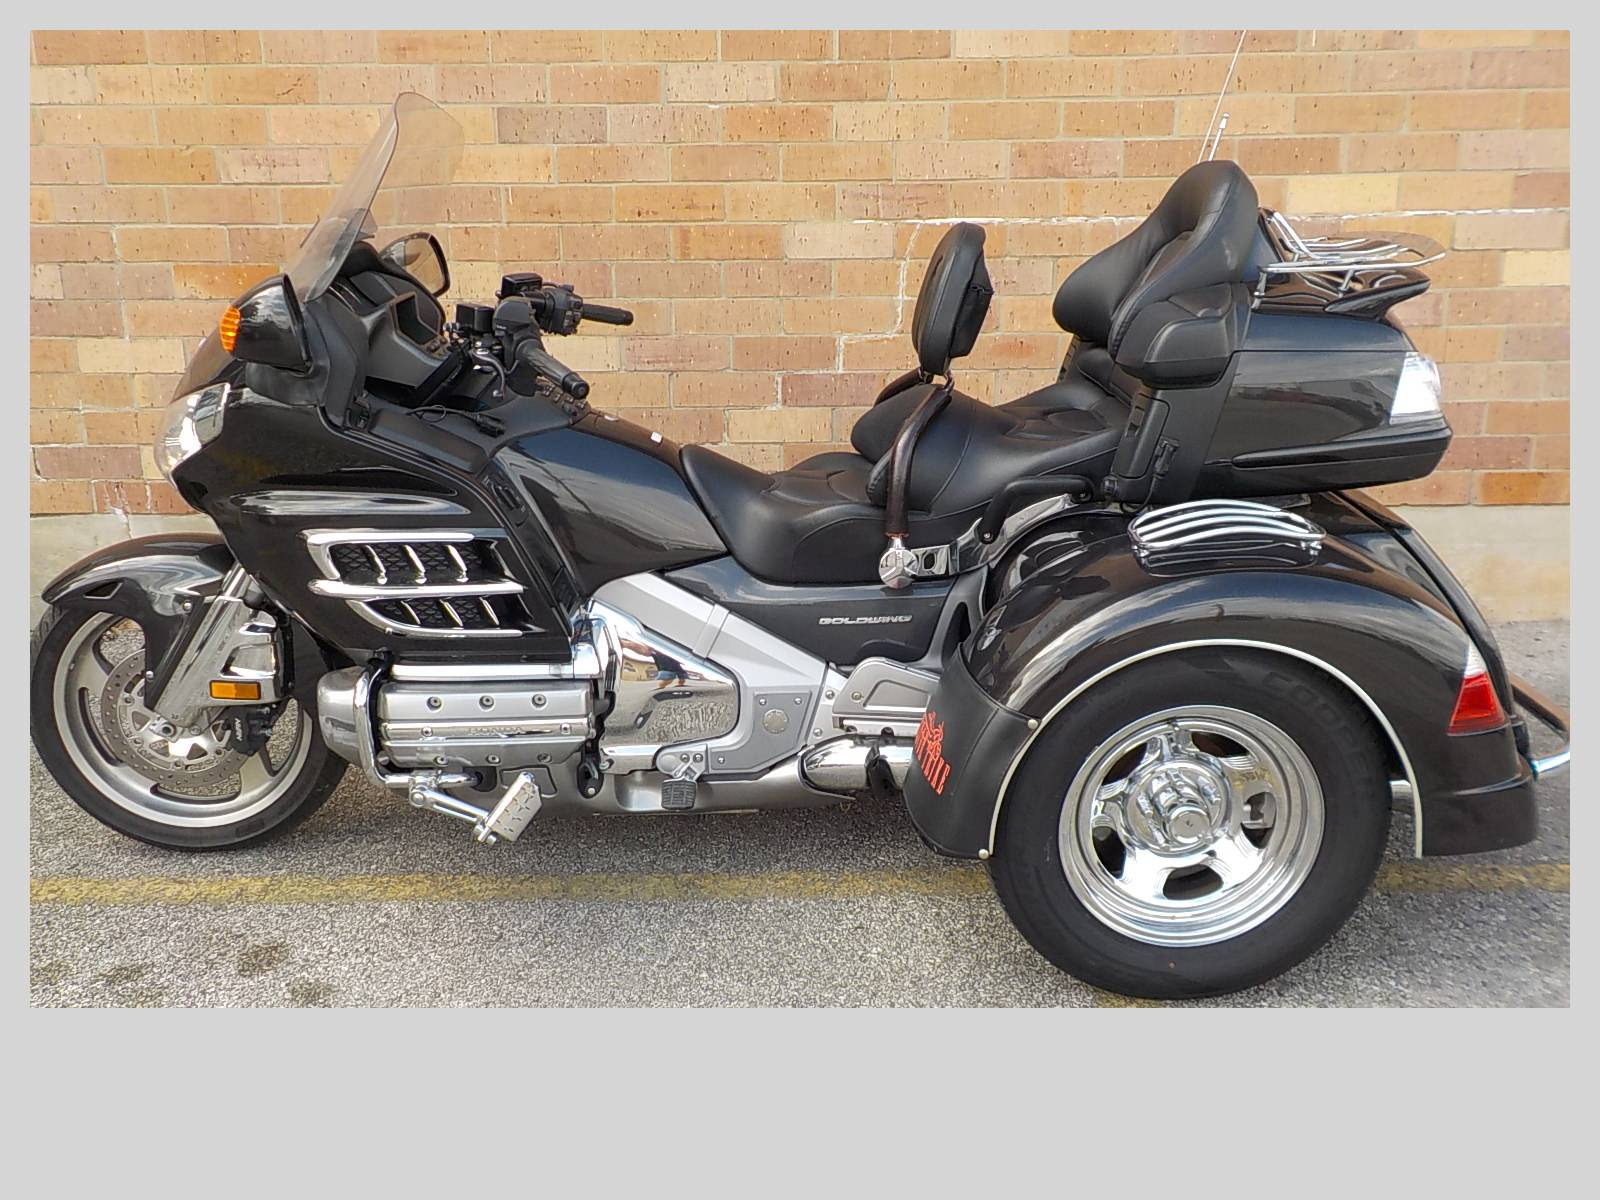 2010 Motor Trike GL 1800 Adventure IRS in San Antonio, Texas - Photo 2